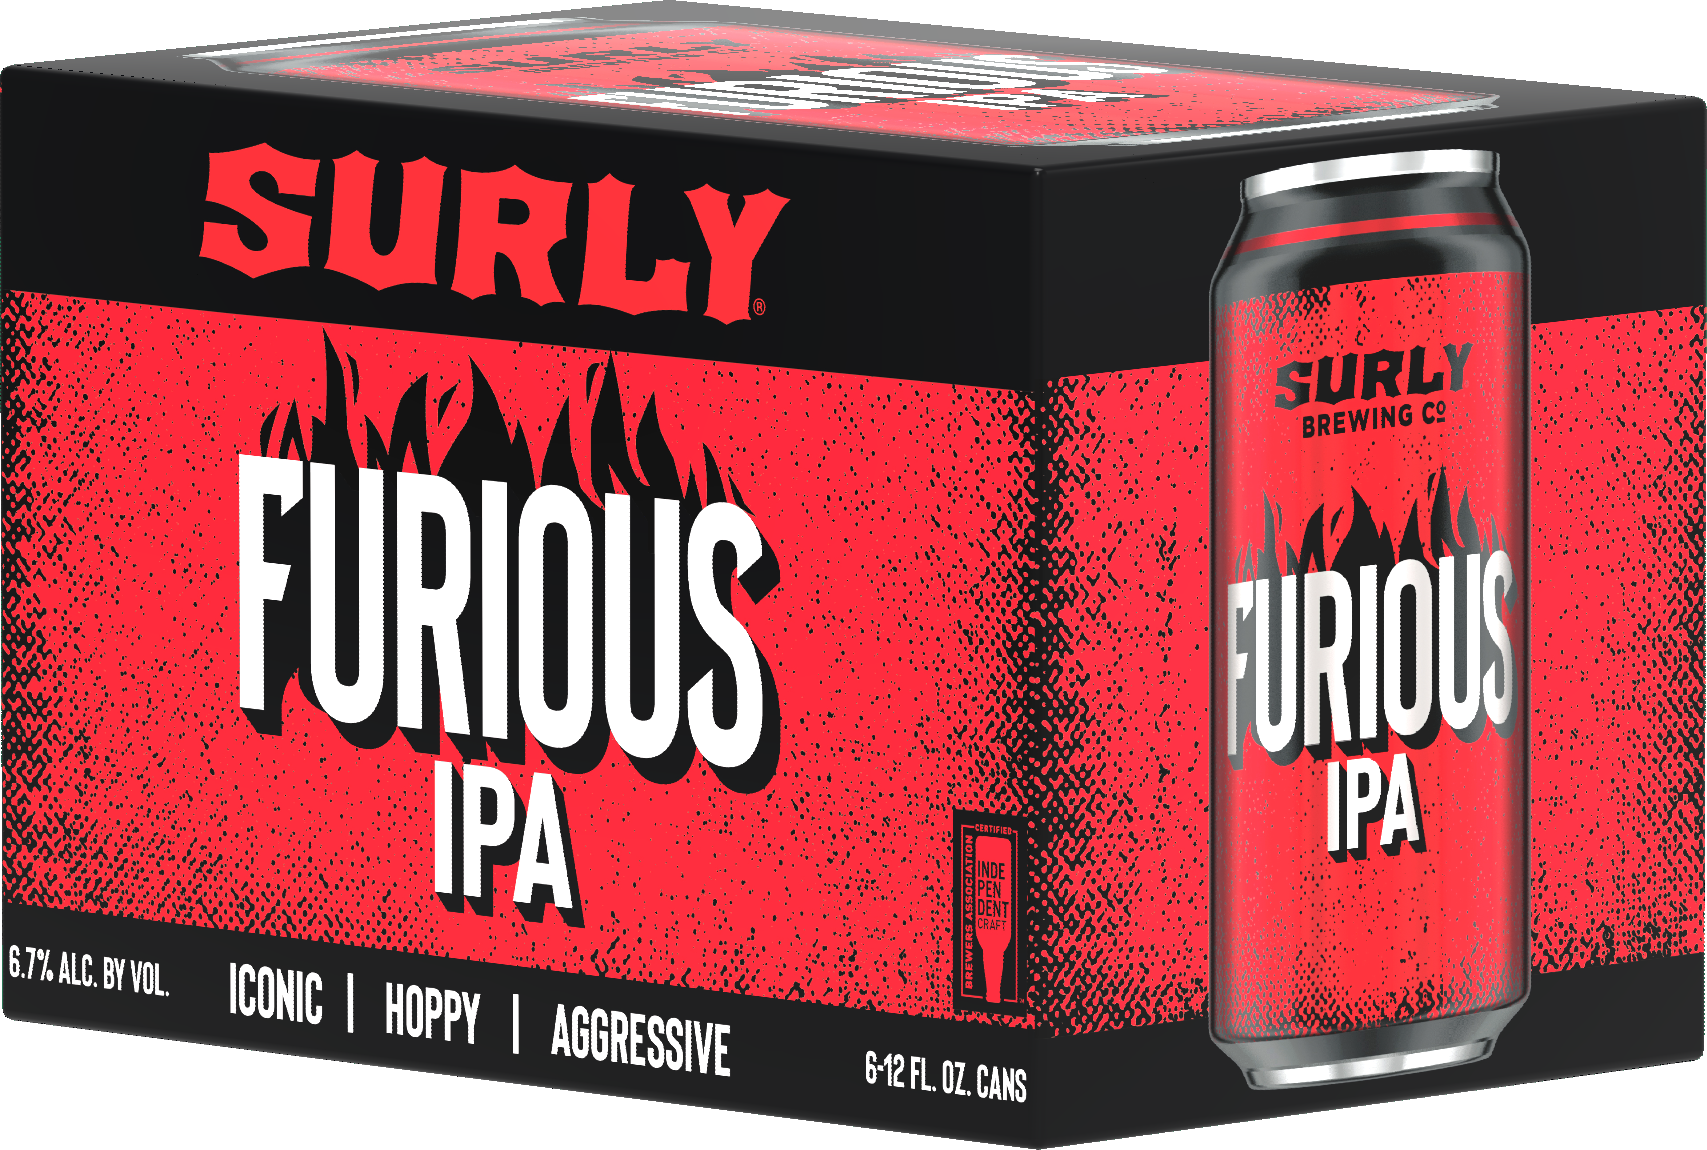 Surly Brewing Co. SURLY BREWING FURIOUS IPA 6 PK CANS